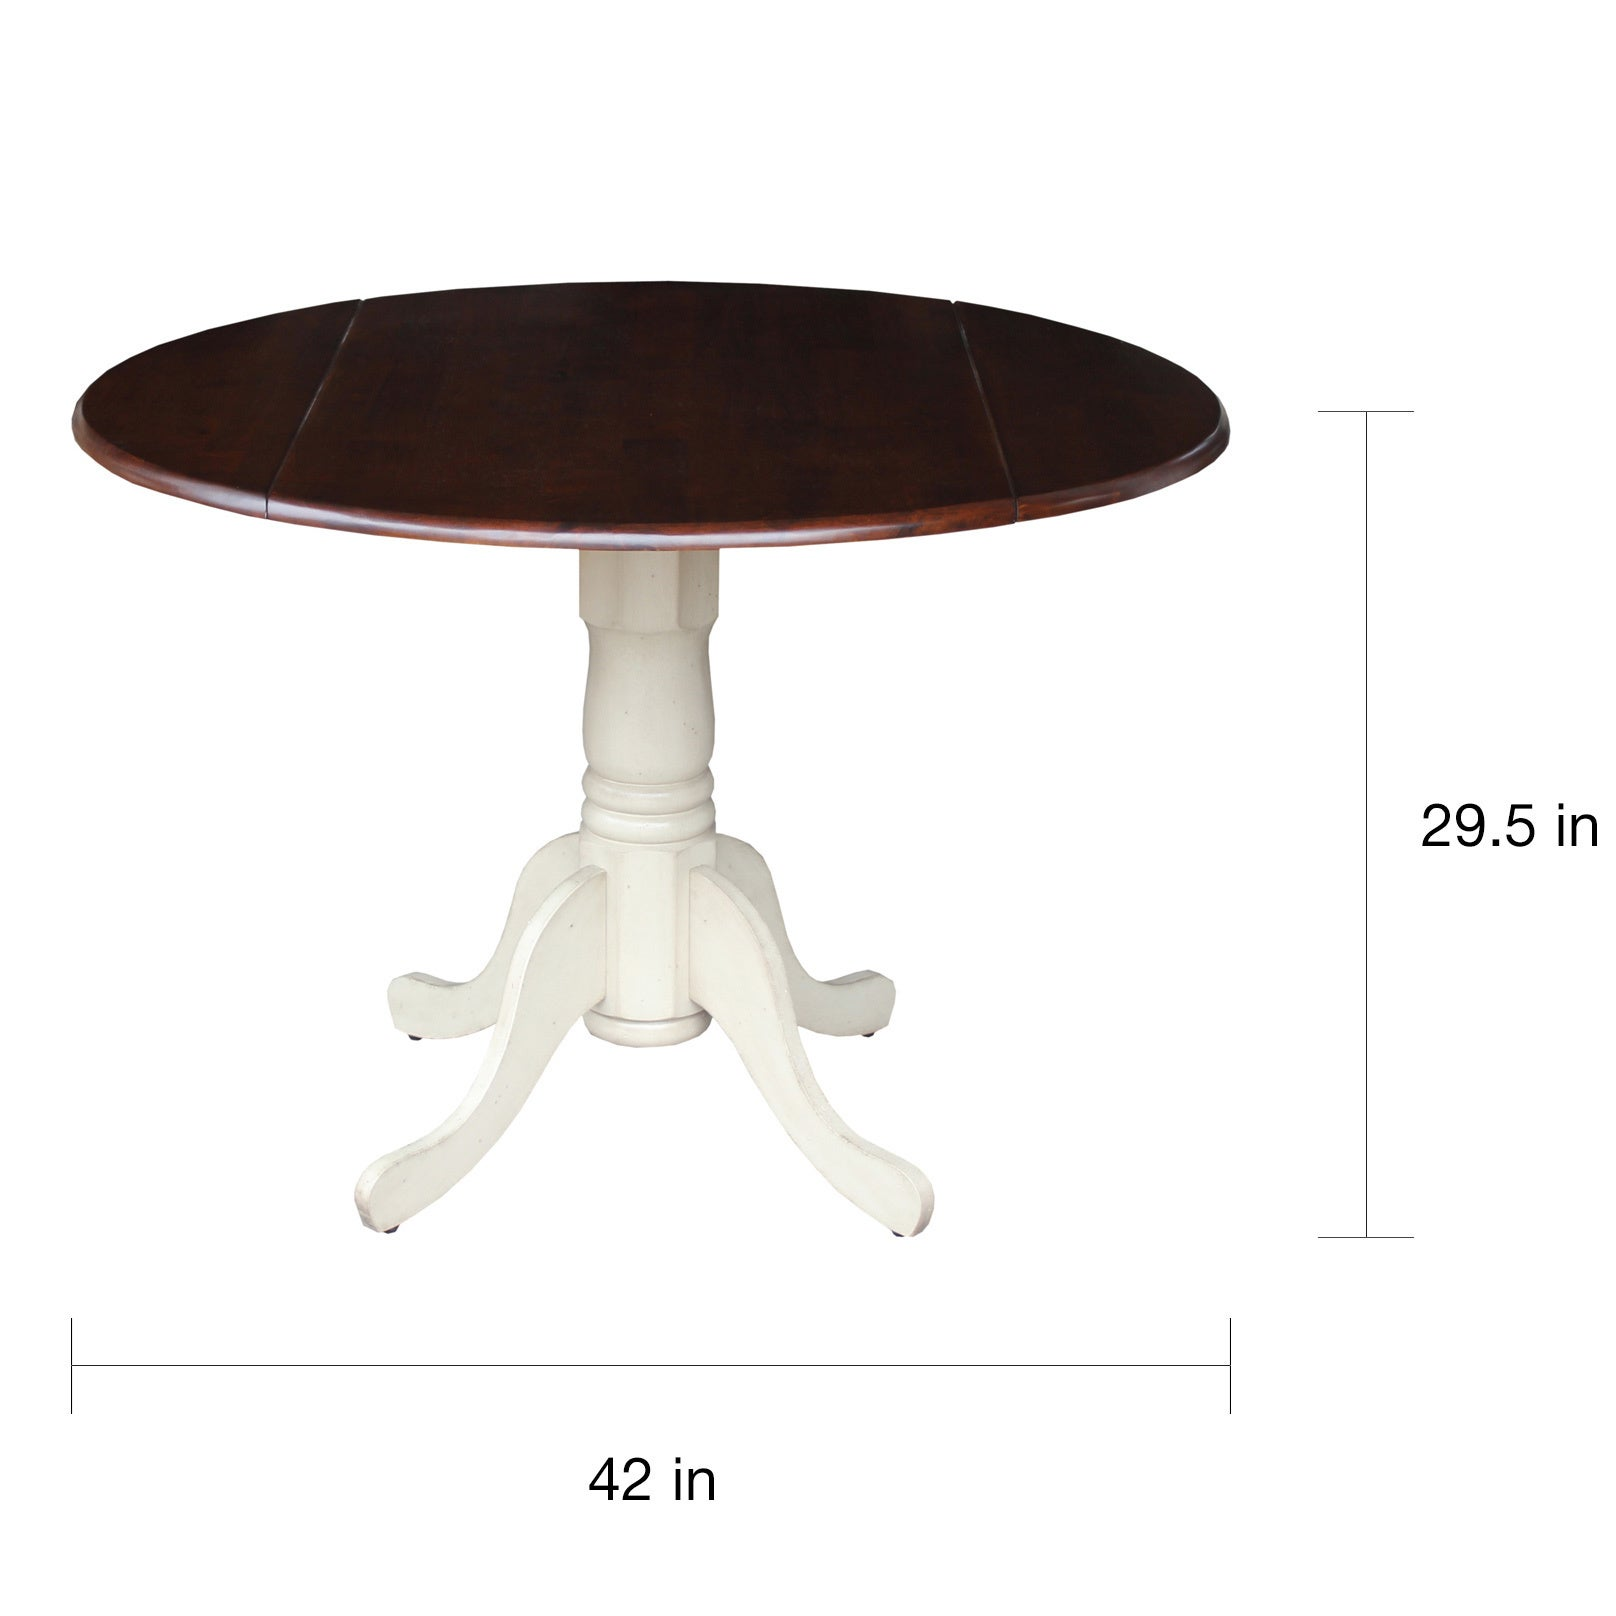 International Concepts Antique White and Espresso Wood 42 inch Round